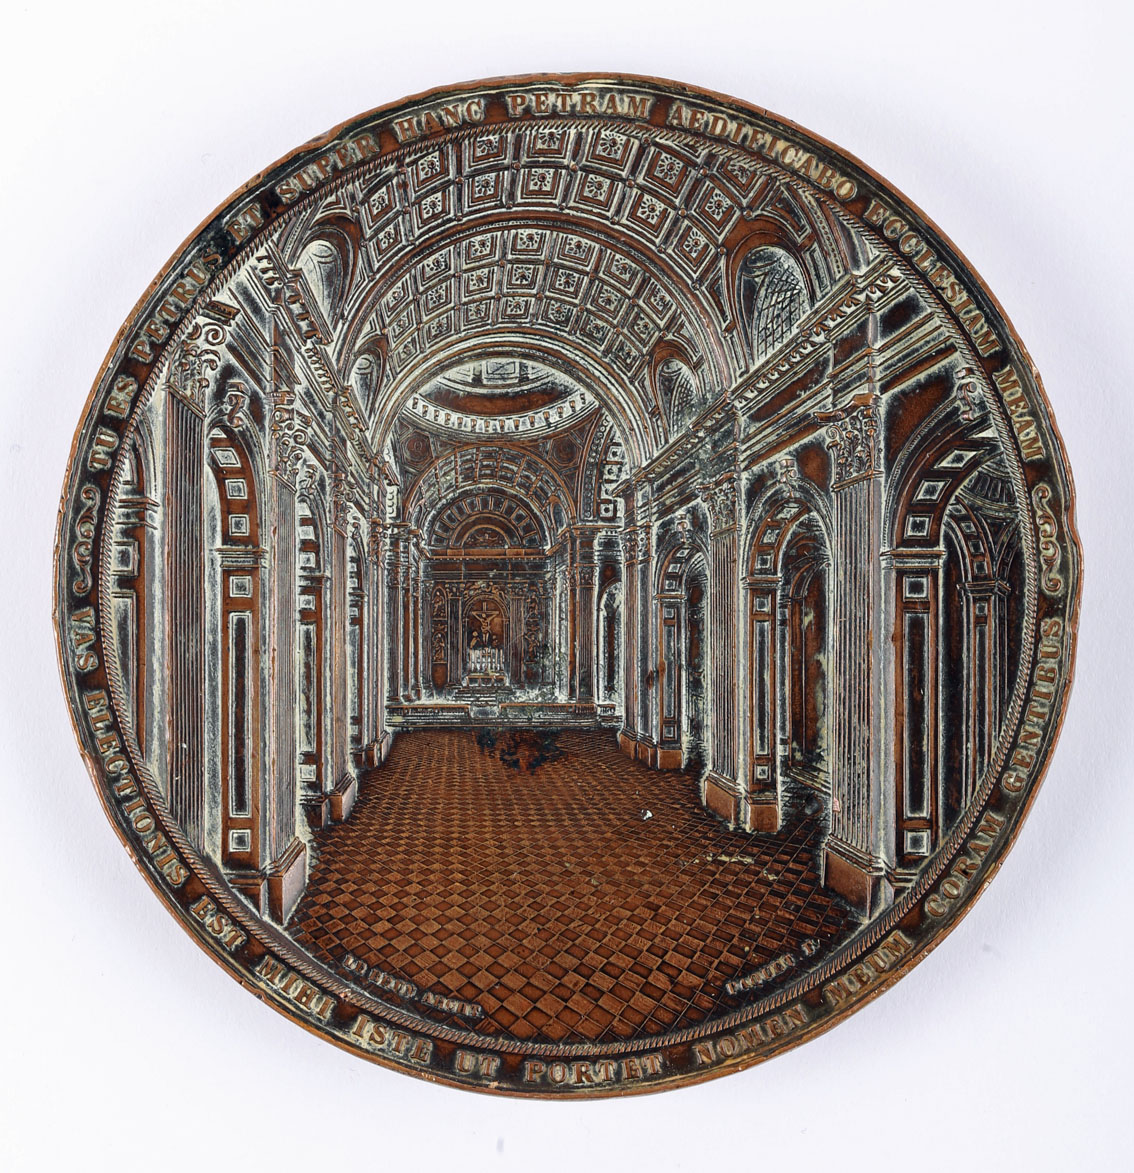 1864 Cathedral of St. Peter and St. Paul, Philadelphia medal, copper, 80 mm. 230g, by Anthony C. - Image 2 of 2